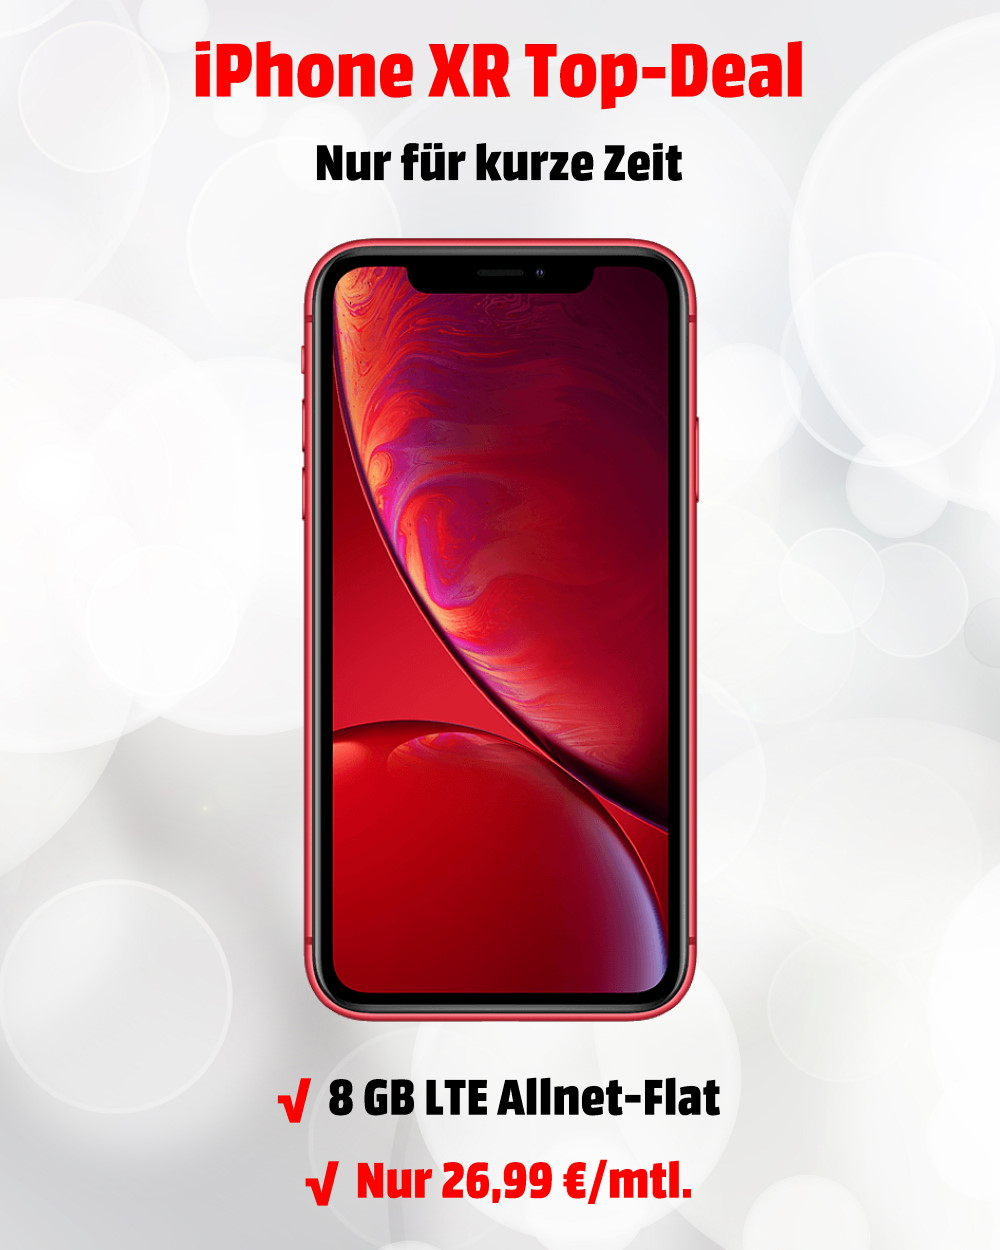 iPhone XR (RED-Edition) mit 8 GB LTE Allnet-Flat zum absoluten Tiefstpreis